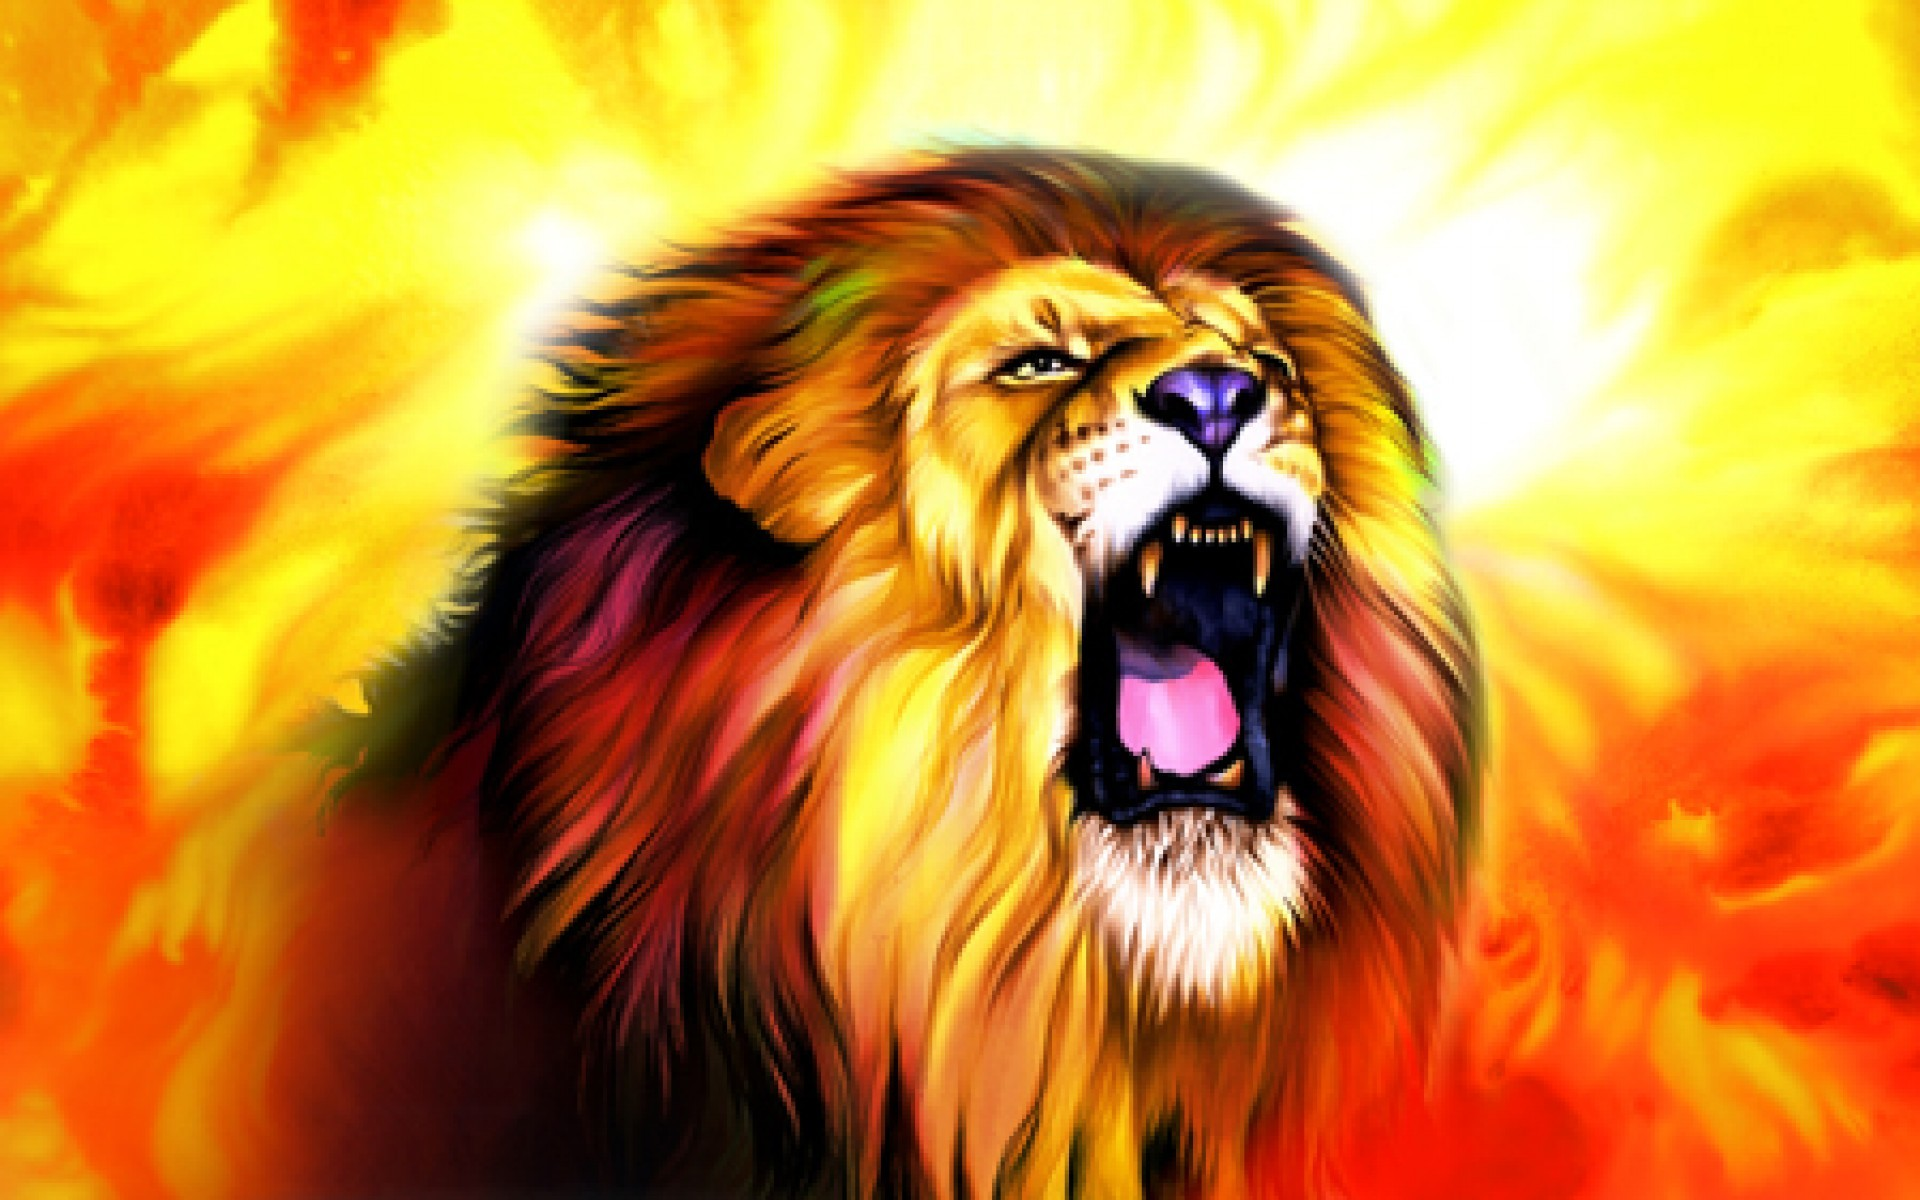 Res: 1920x1200, Title : Image of roaring lion dowload